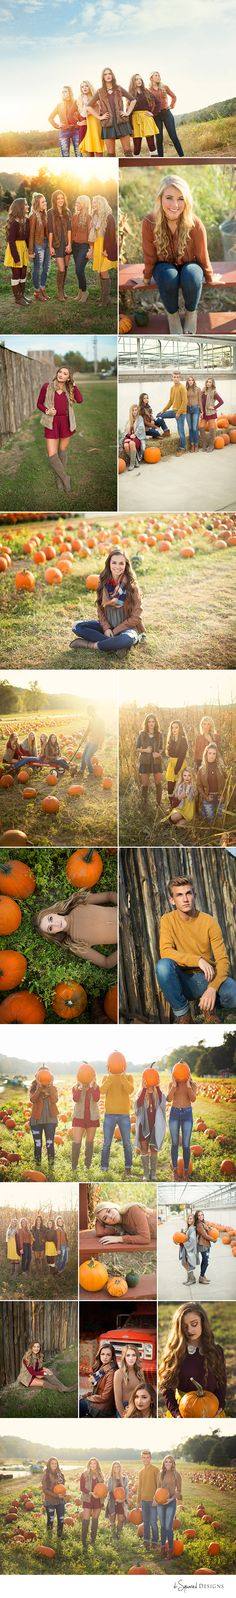 d-Squared Designs St. Louis MO Senior Photography d-Squared Designs St. Autumn Photography, Senior Photography, Family Photography, Portrait Photography, Photography Ideas, Fall Pictures, Bff Pictures, Fall Photos, Girl Senior Pictures